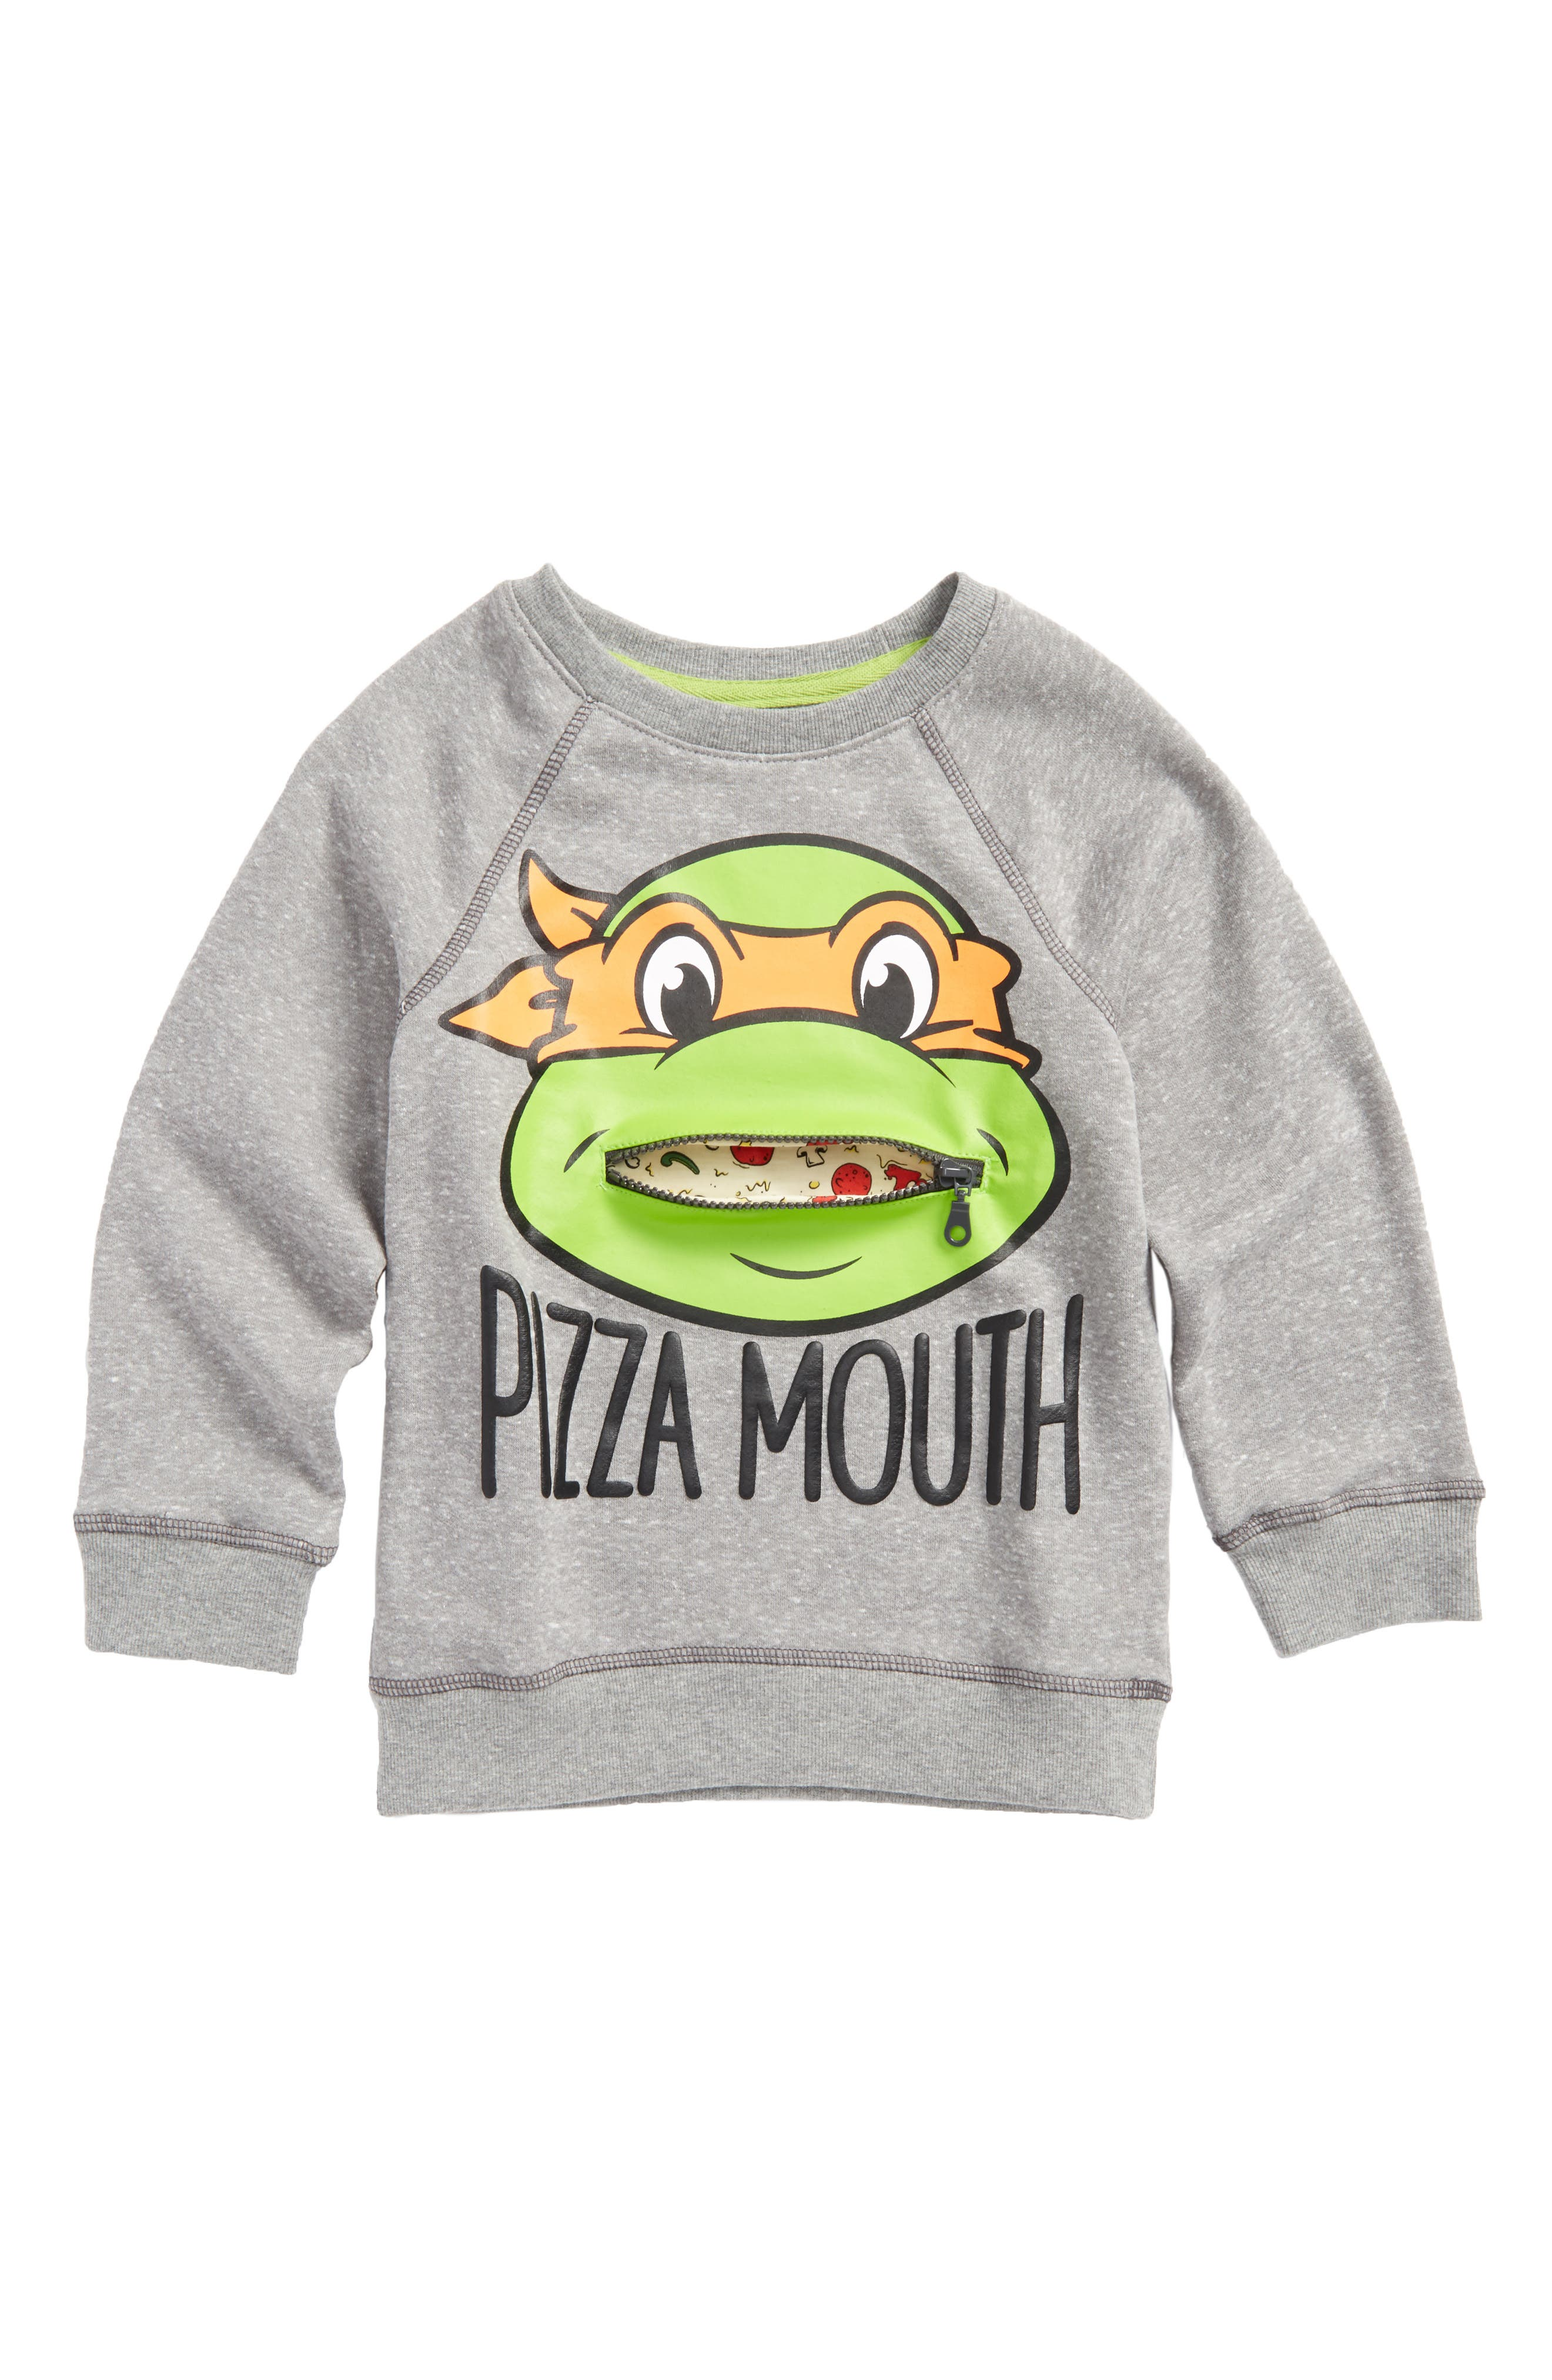 TMNT - Zipper Mouth Graphic Sweatshirt,                             Main thumbnail 1, color,                             Heather Grey